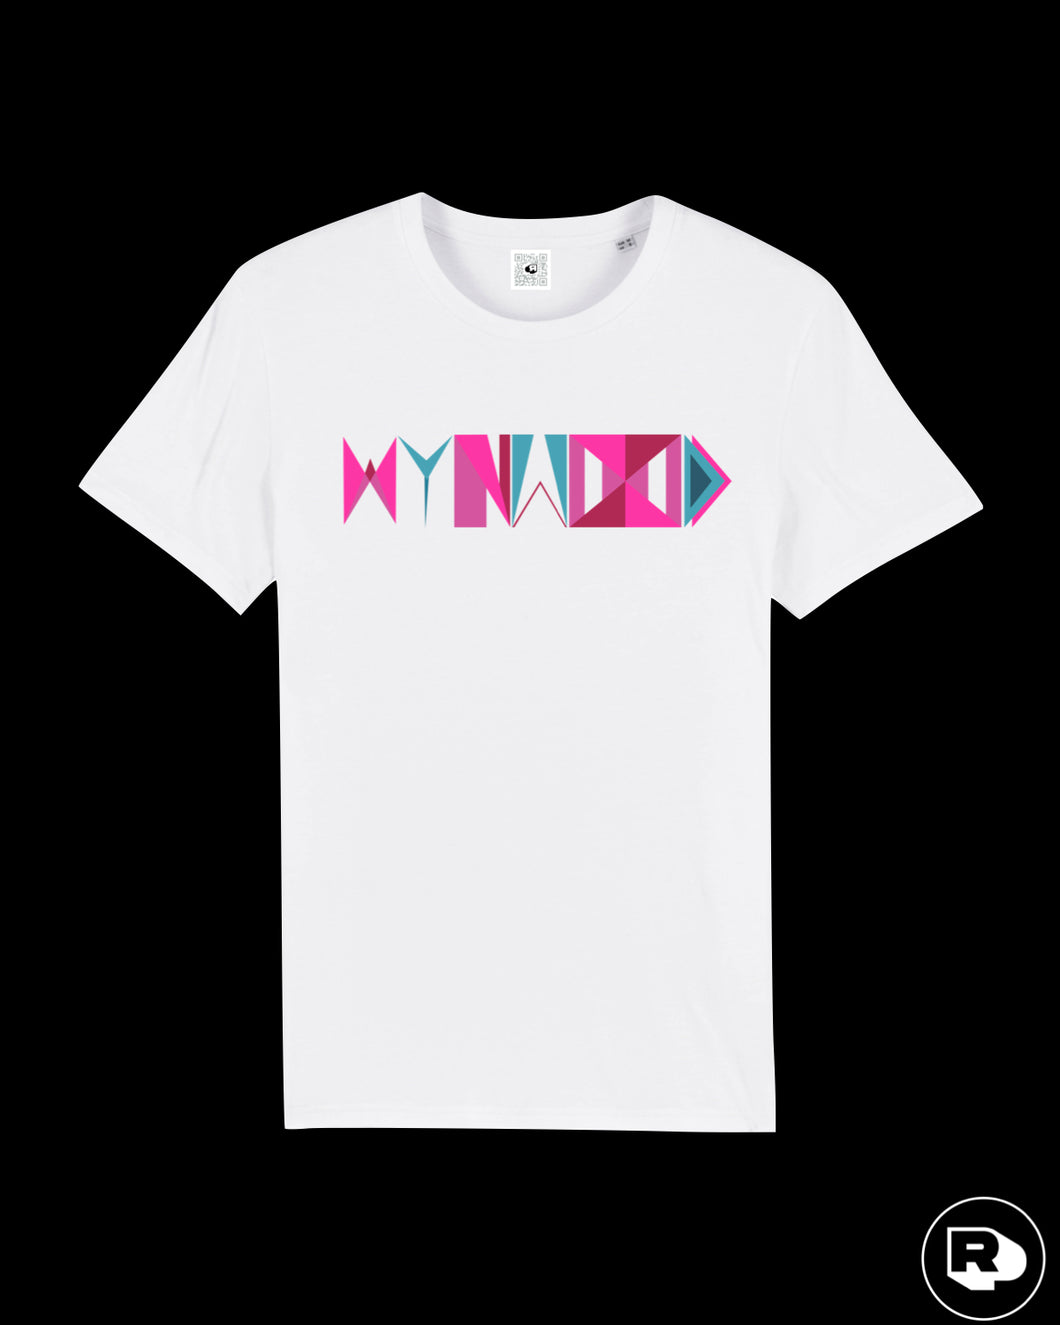 Riposte Wynwood t-shirt